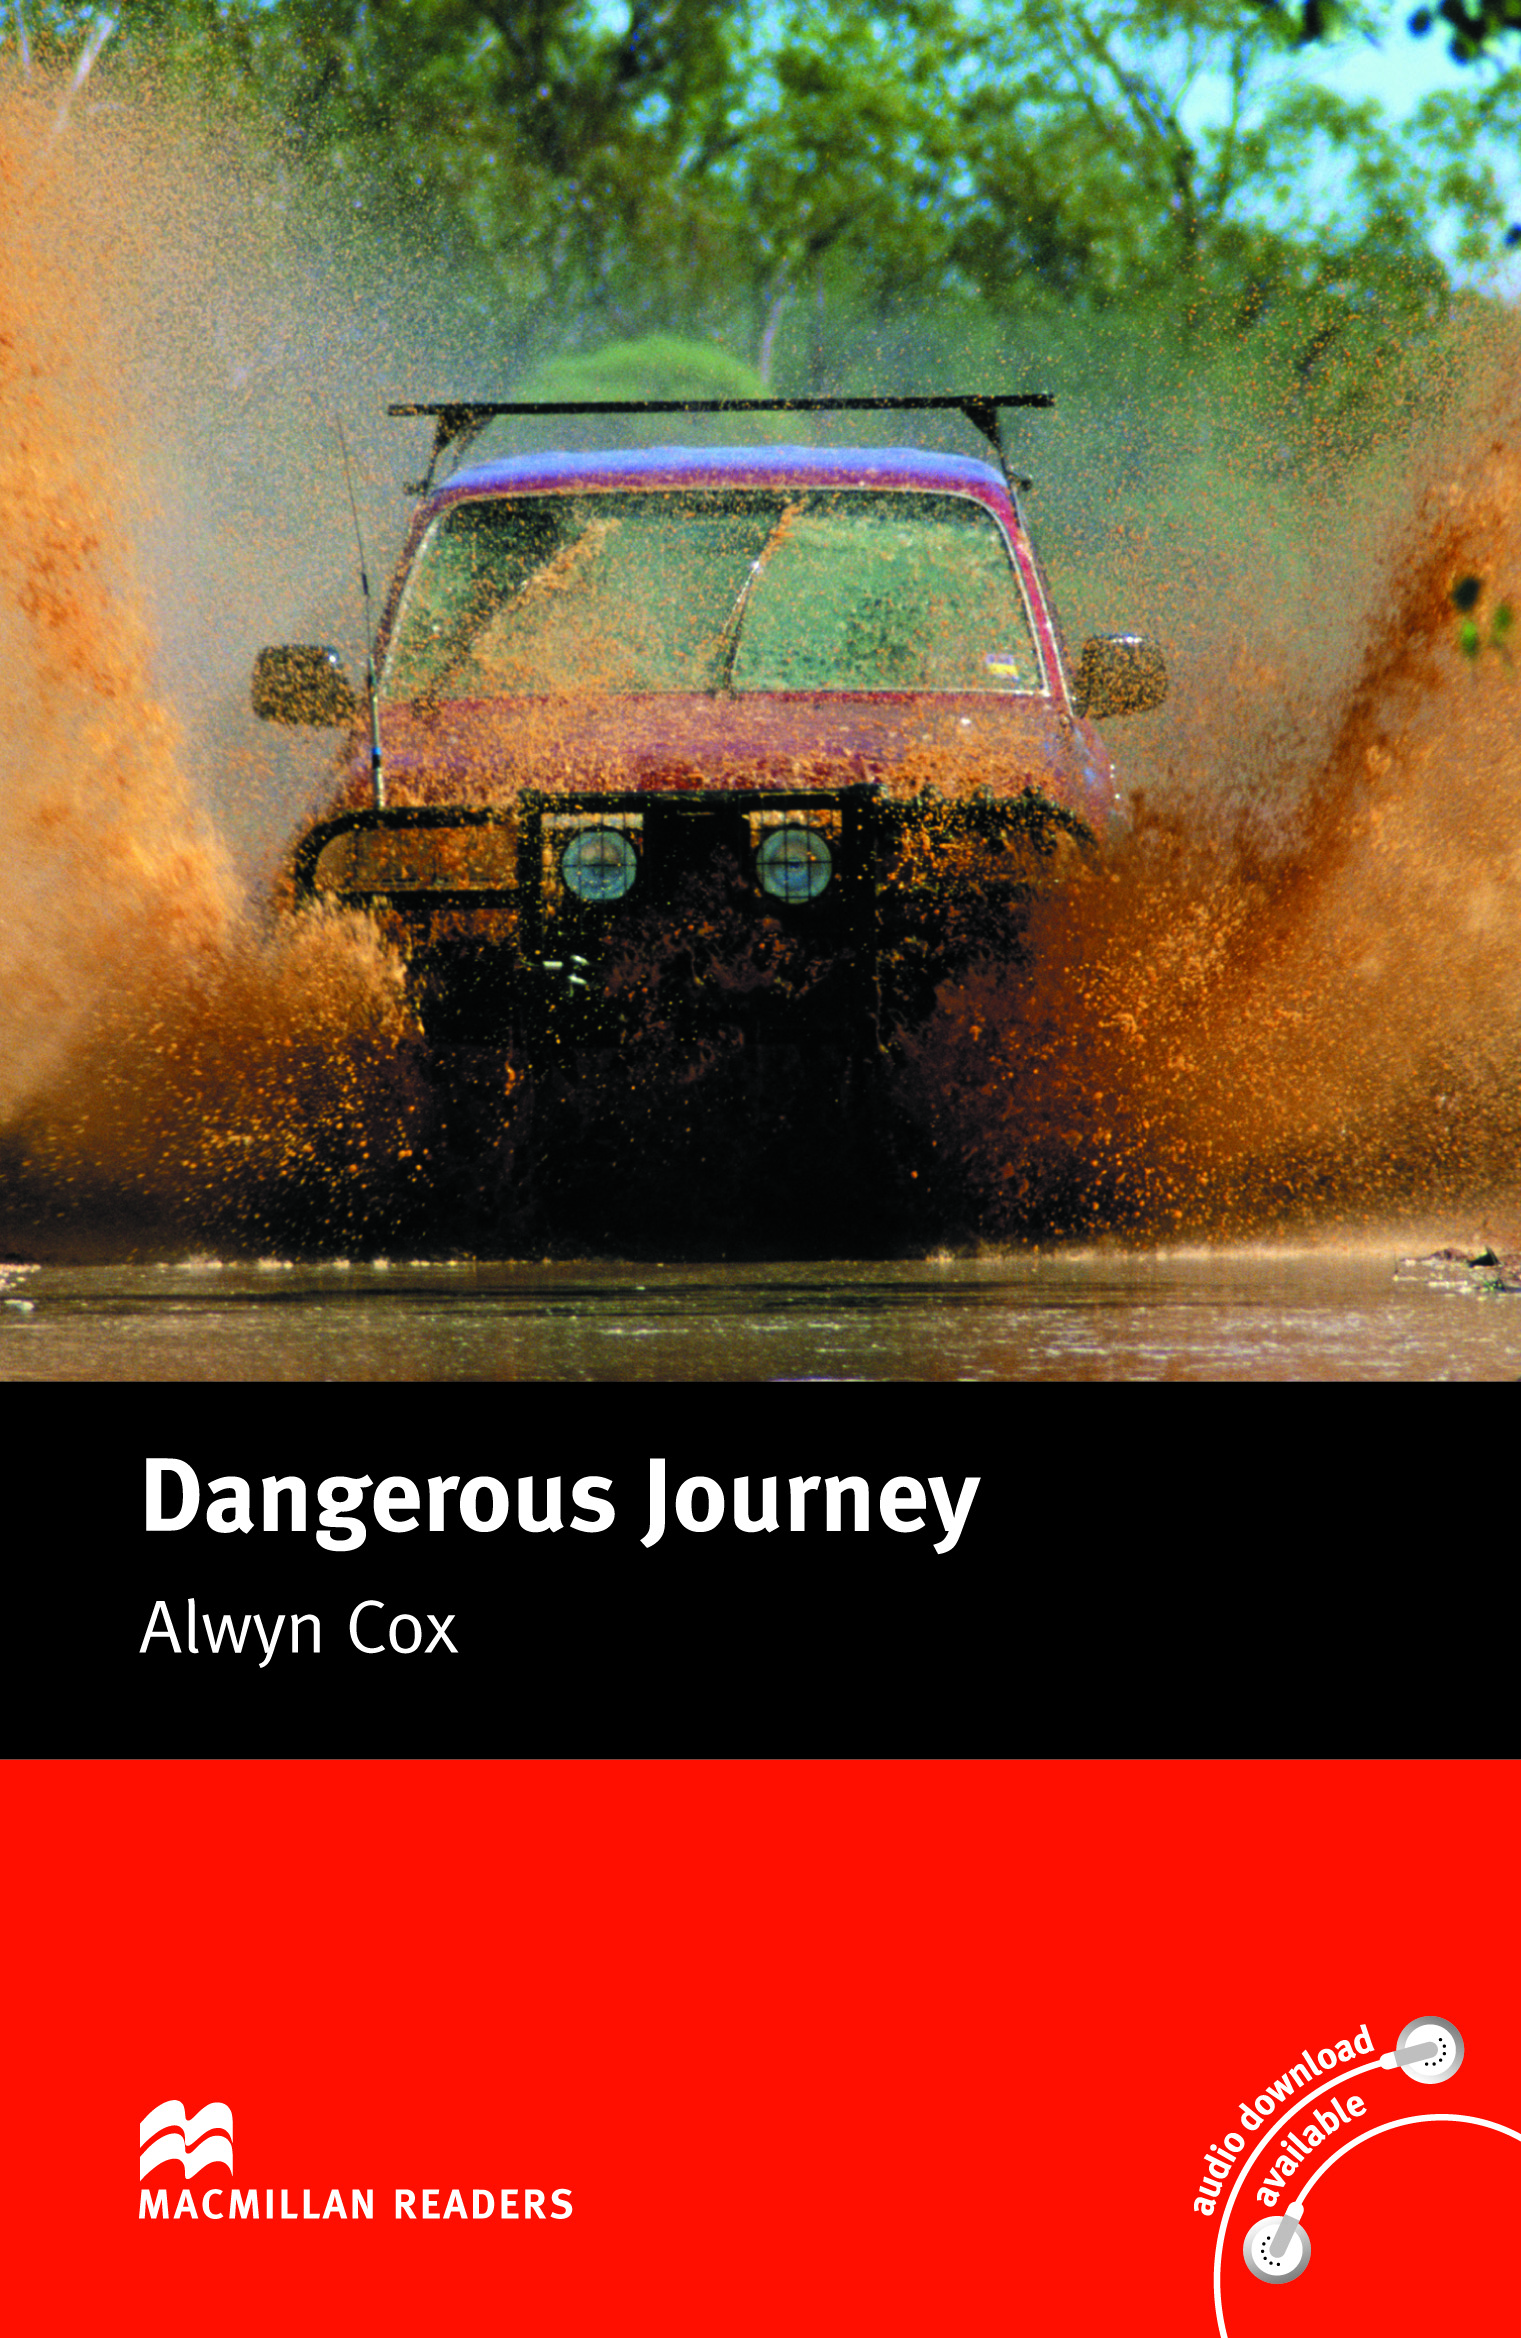 Macmillan Readers: Dangerous Journey without CD